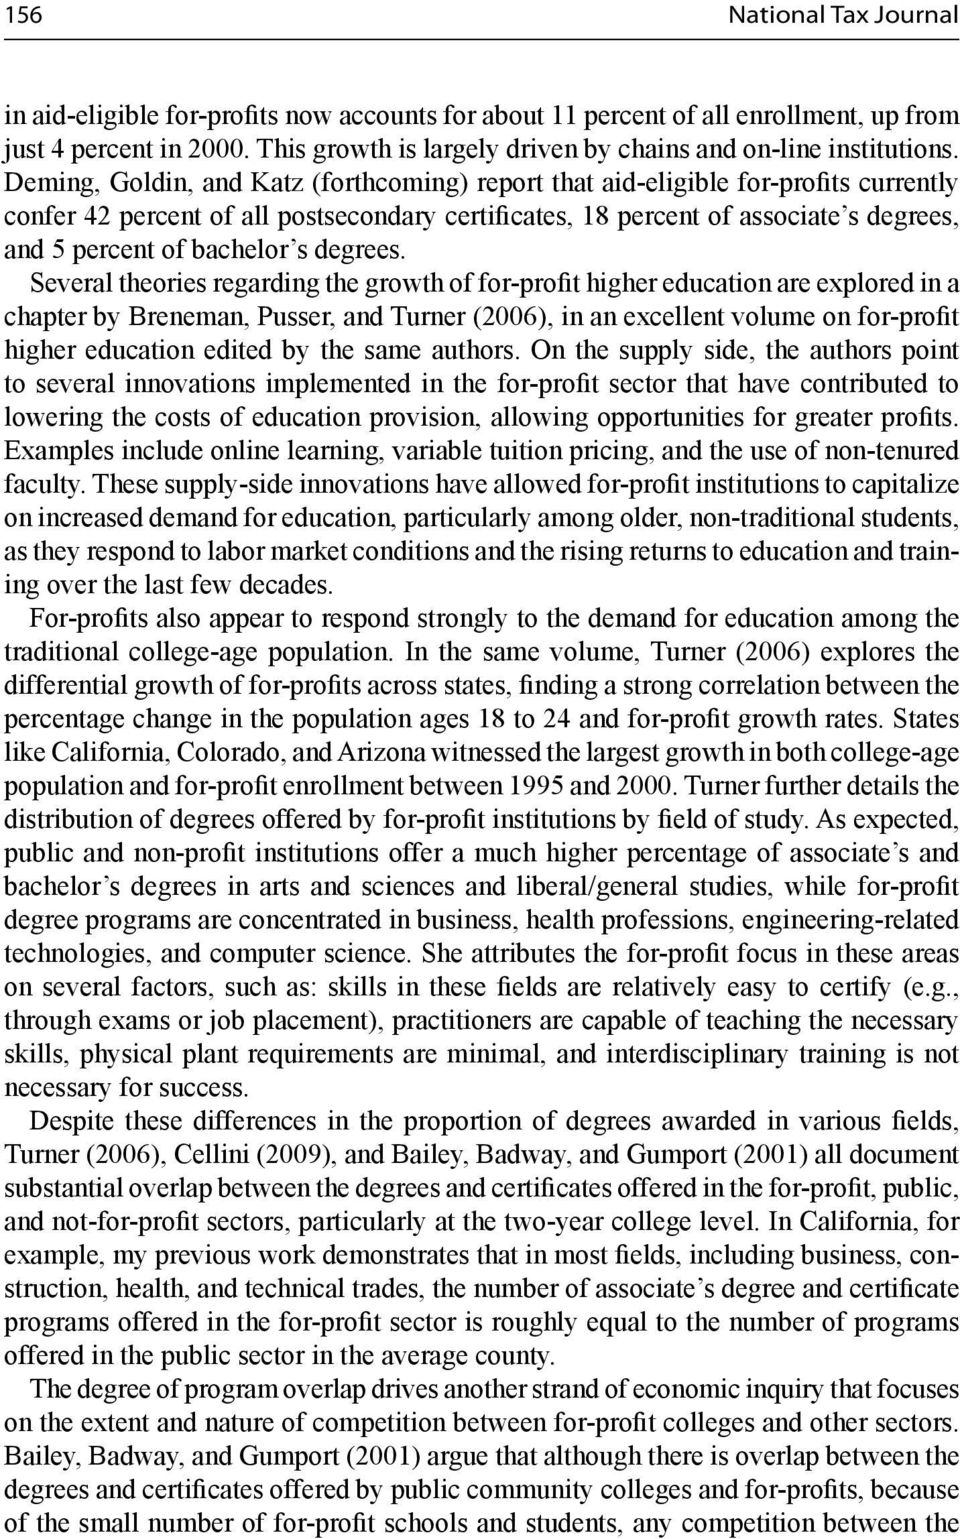 Deming, Goldin, and Katz (forthcoming) report that aid-eligible for-profits currently confer 42 percent of all postsecondary certificates, 18 percent of associate s degrees, and 5 percent of bachelor